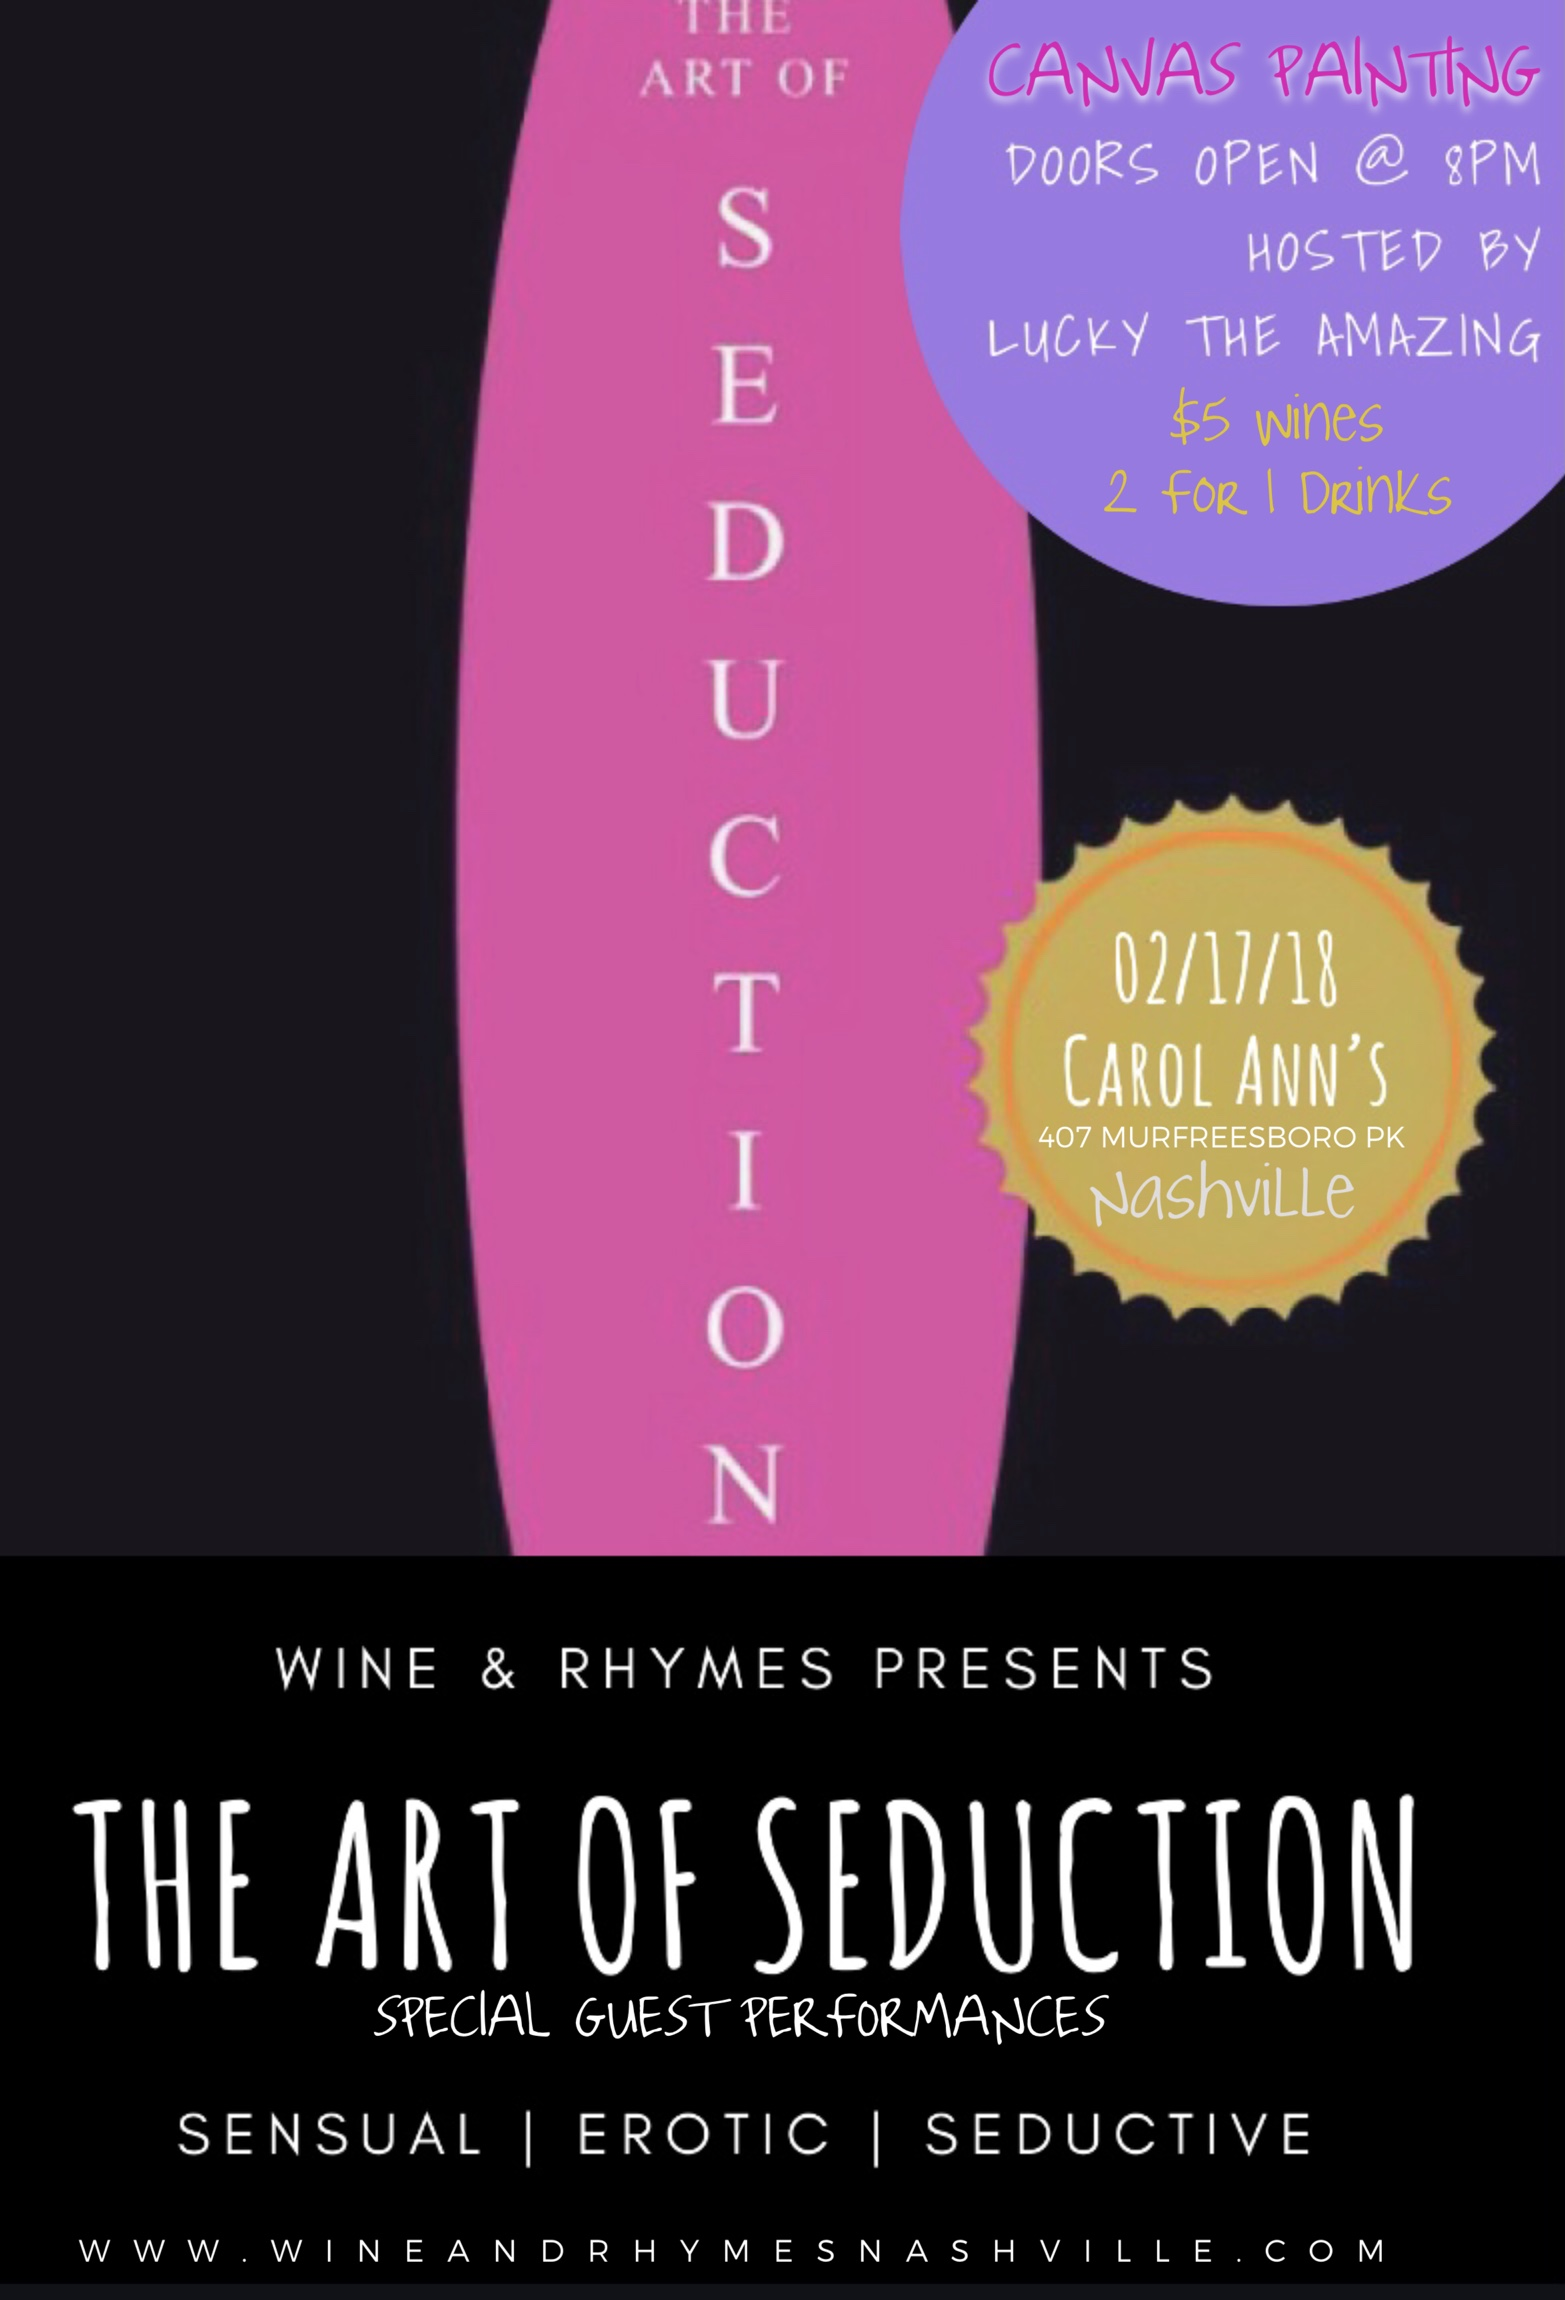 Nashville's very own Wine & Rhymes will be featuring some of the city's best performances! Come out and enjoy an evening of sensation, erotic, and secductive poetry. Doors will open at 8pm and the show will be begin 9pm. $5 Wine specials and 2 For 1 Drinks available!  Canvas + Glass of Wine with the purchase of Canvas + Wine you will be able to paint while enjoying the show accompanied by your choice of wine (1 Free Glass). You will be able to keep your painting or possibly be purchased if you're lucky!  *Tickets will be available at the door for the same price as online  For more information call or text 615-878-2058